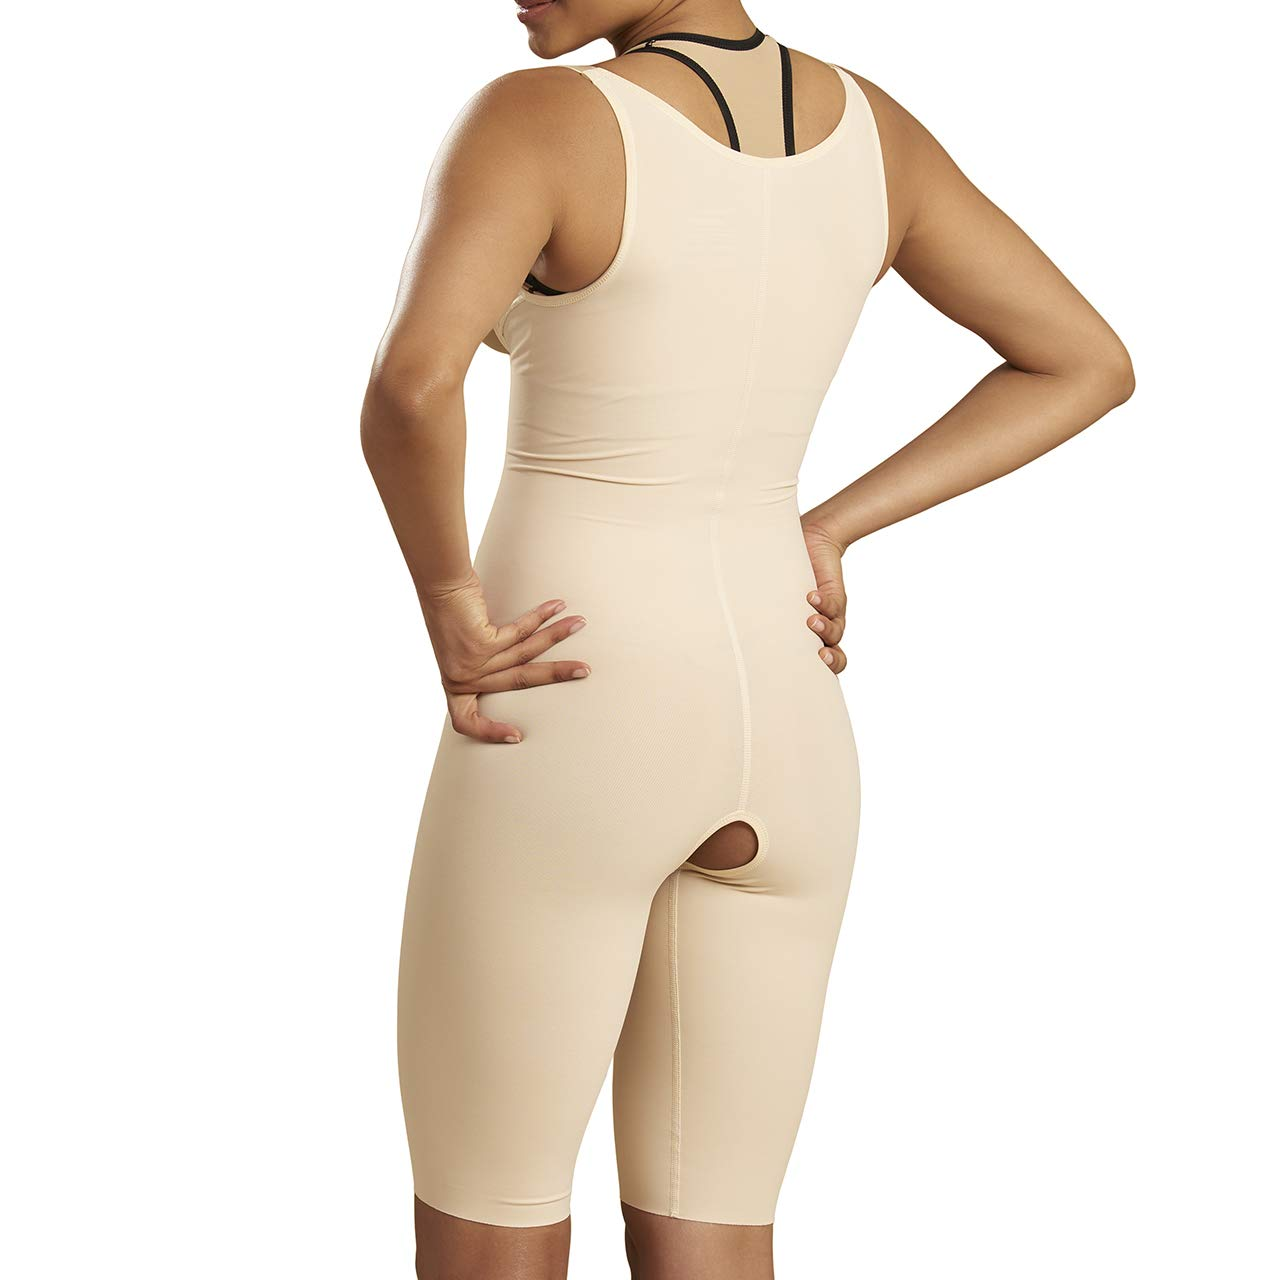 Marena Recovery Knee-Length Girdle, Step 2 (Pull on), Black, XL